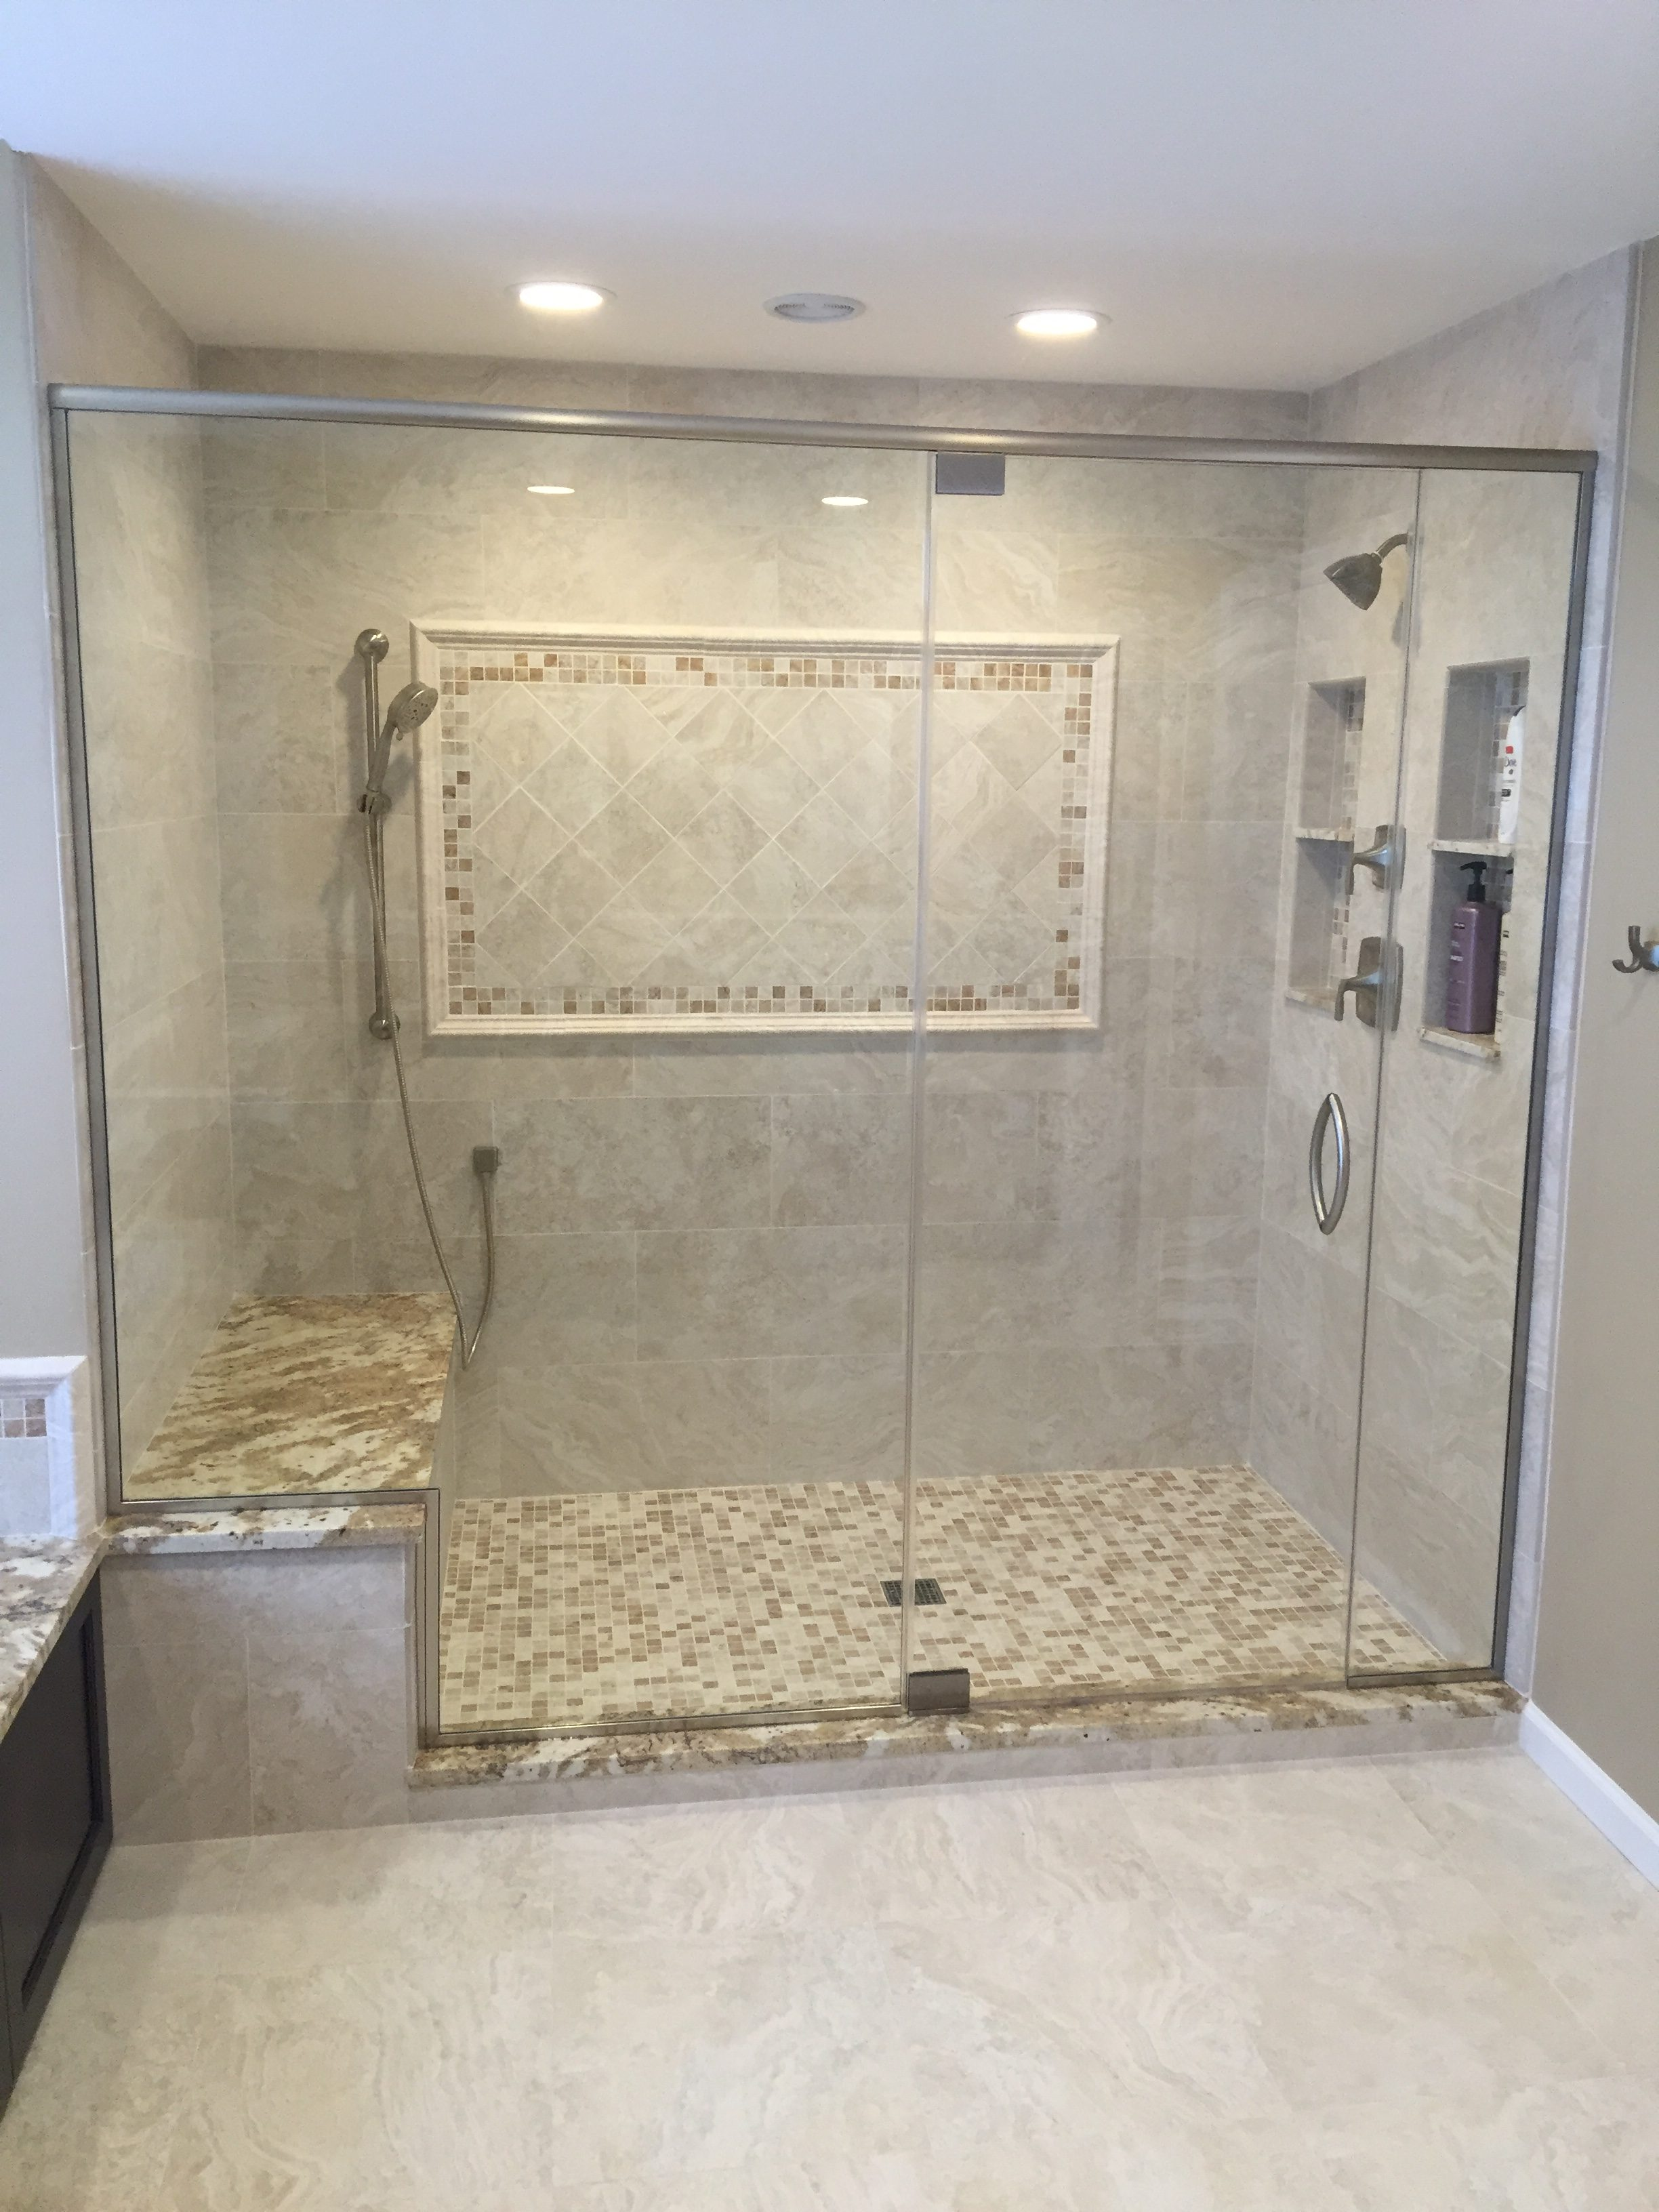 Bathroom Remodel Pictures Gallery bathroom remodeling gallery - setauket kitchen & bath